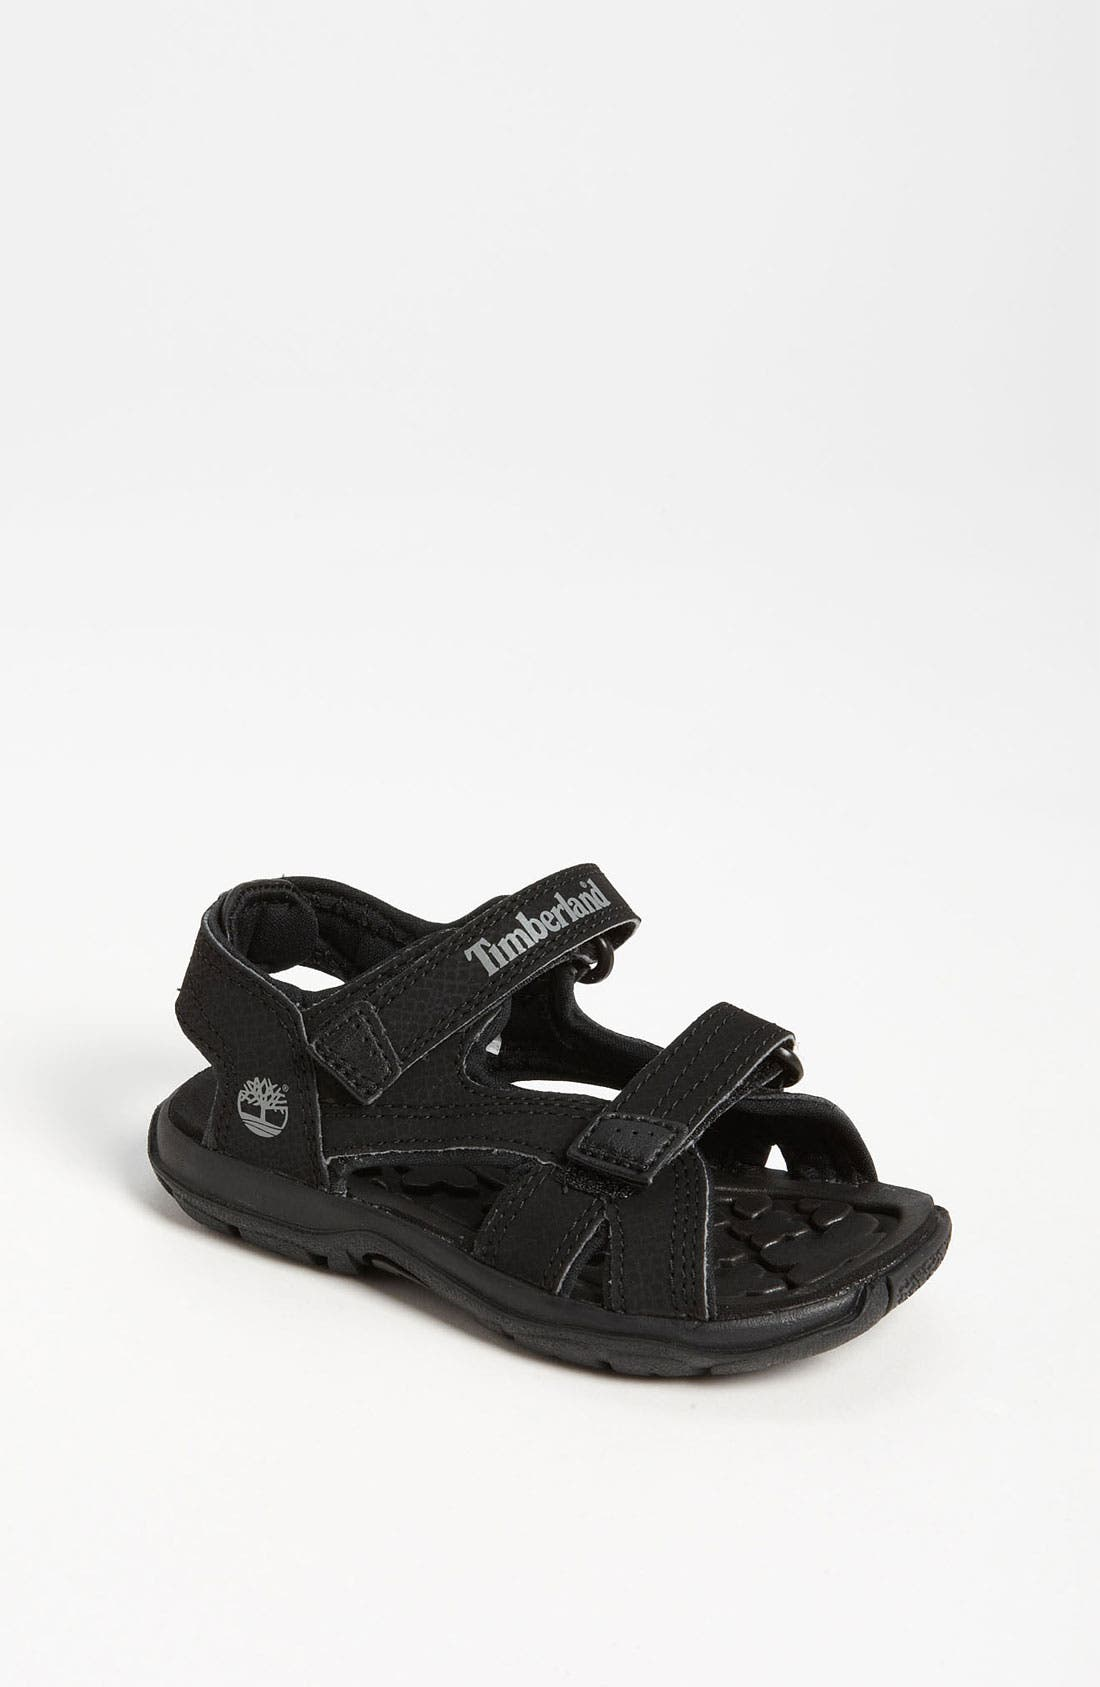 Alternate Image 1 Selected - Timberland 'Mad River' Sandal (Baby, Walker, Toddler, Little Kid & Big Kid)